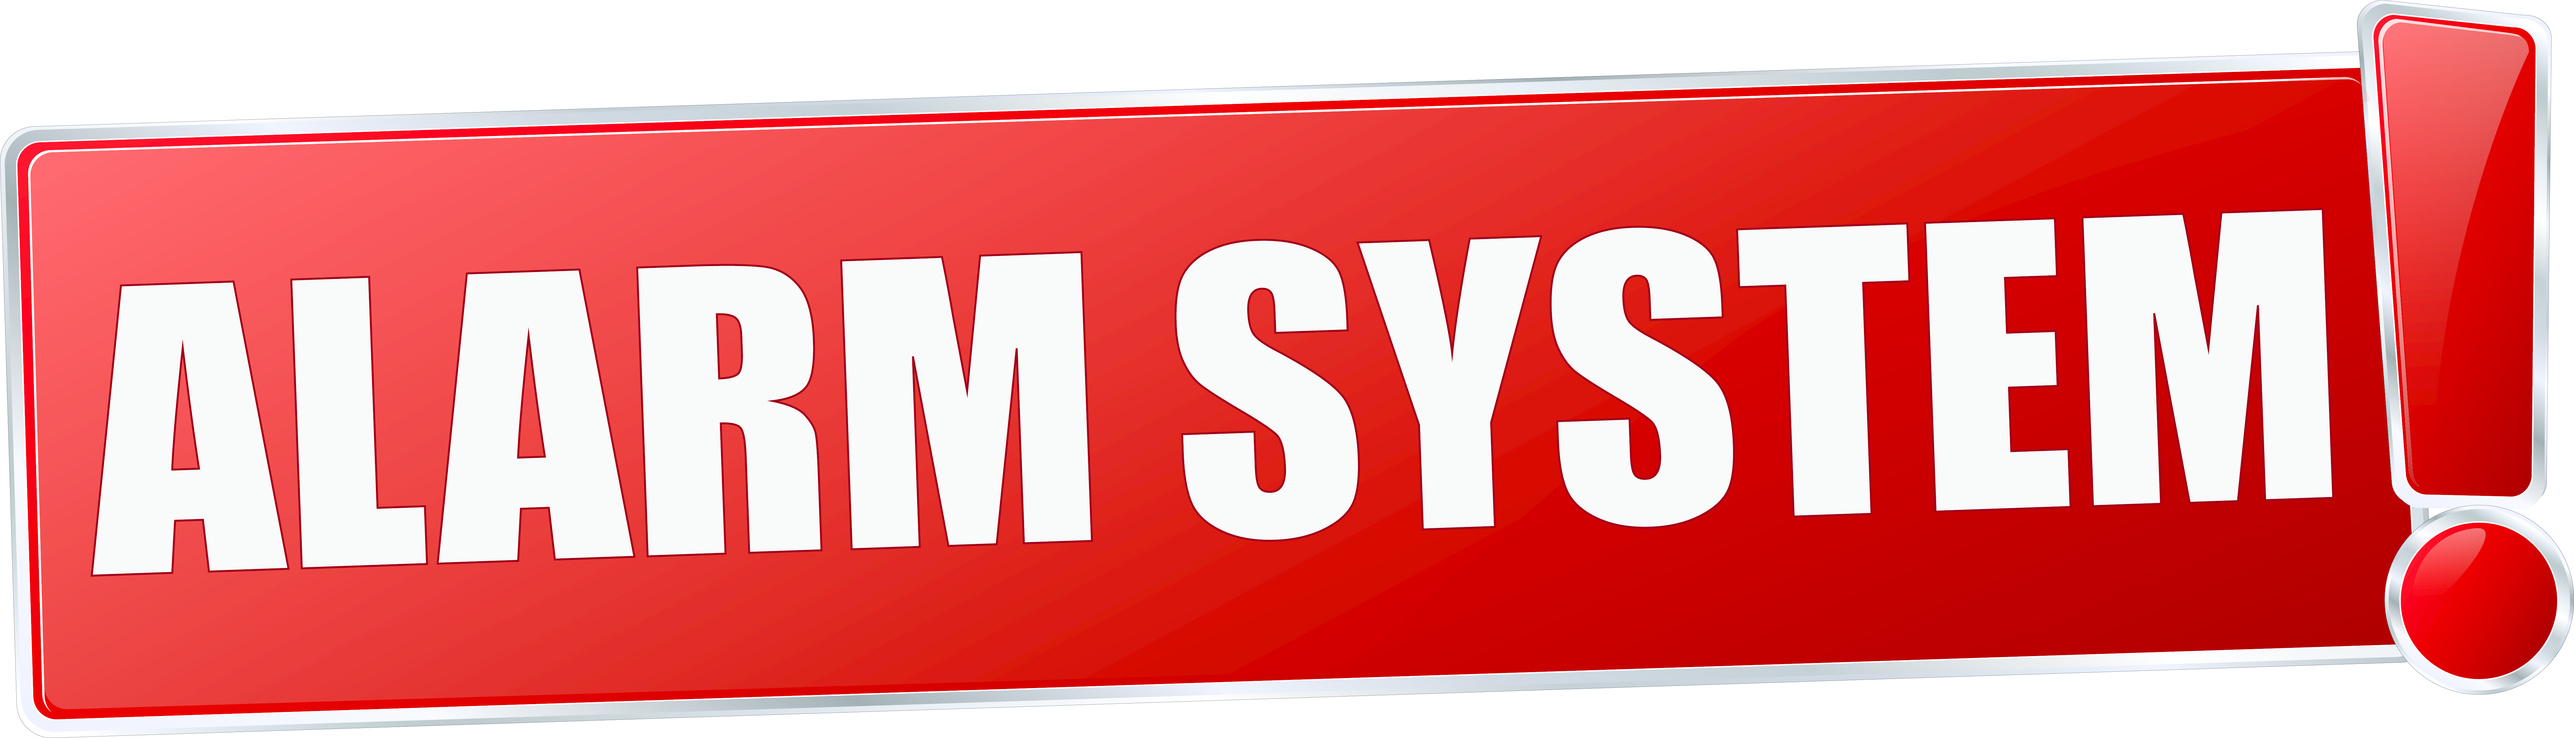 modern red alarm system vector sign in red with metallic border and a exclamation mark